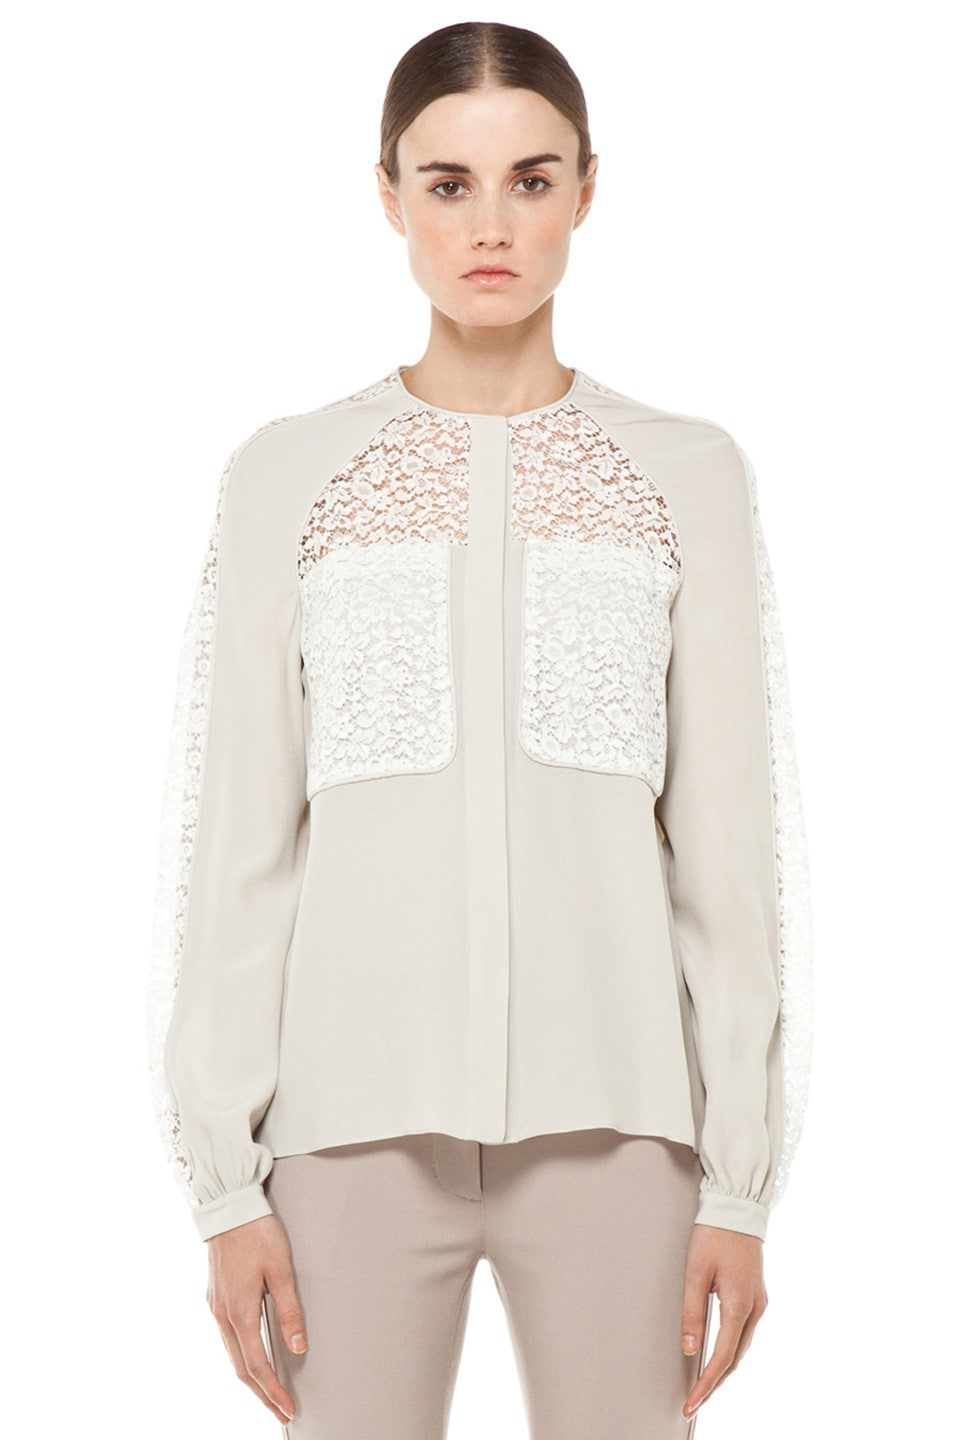 8fa42285c1d57e Image 1 of Chloe Vintage Lace Blouse in Ivory